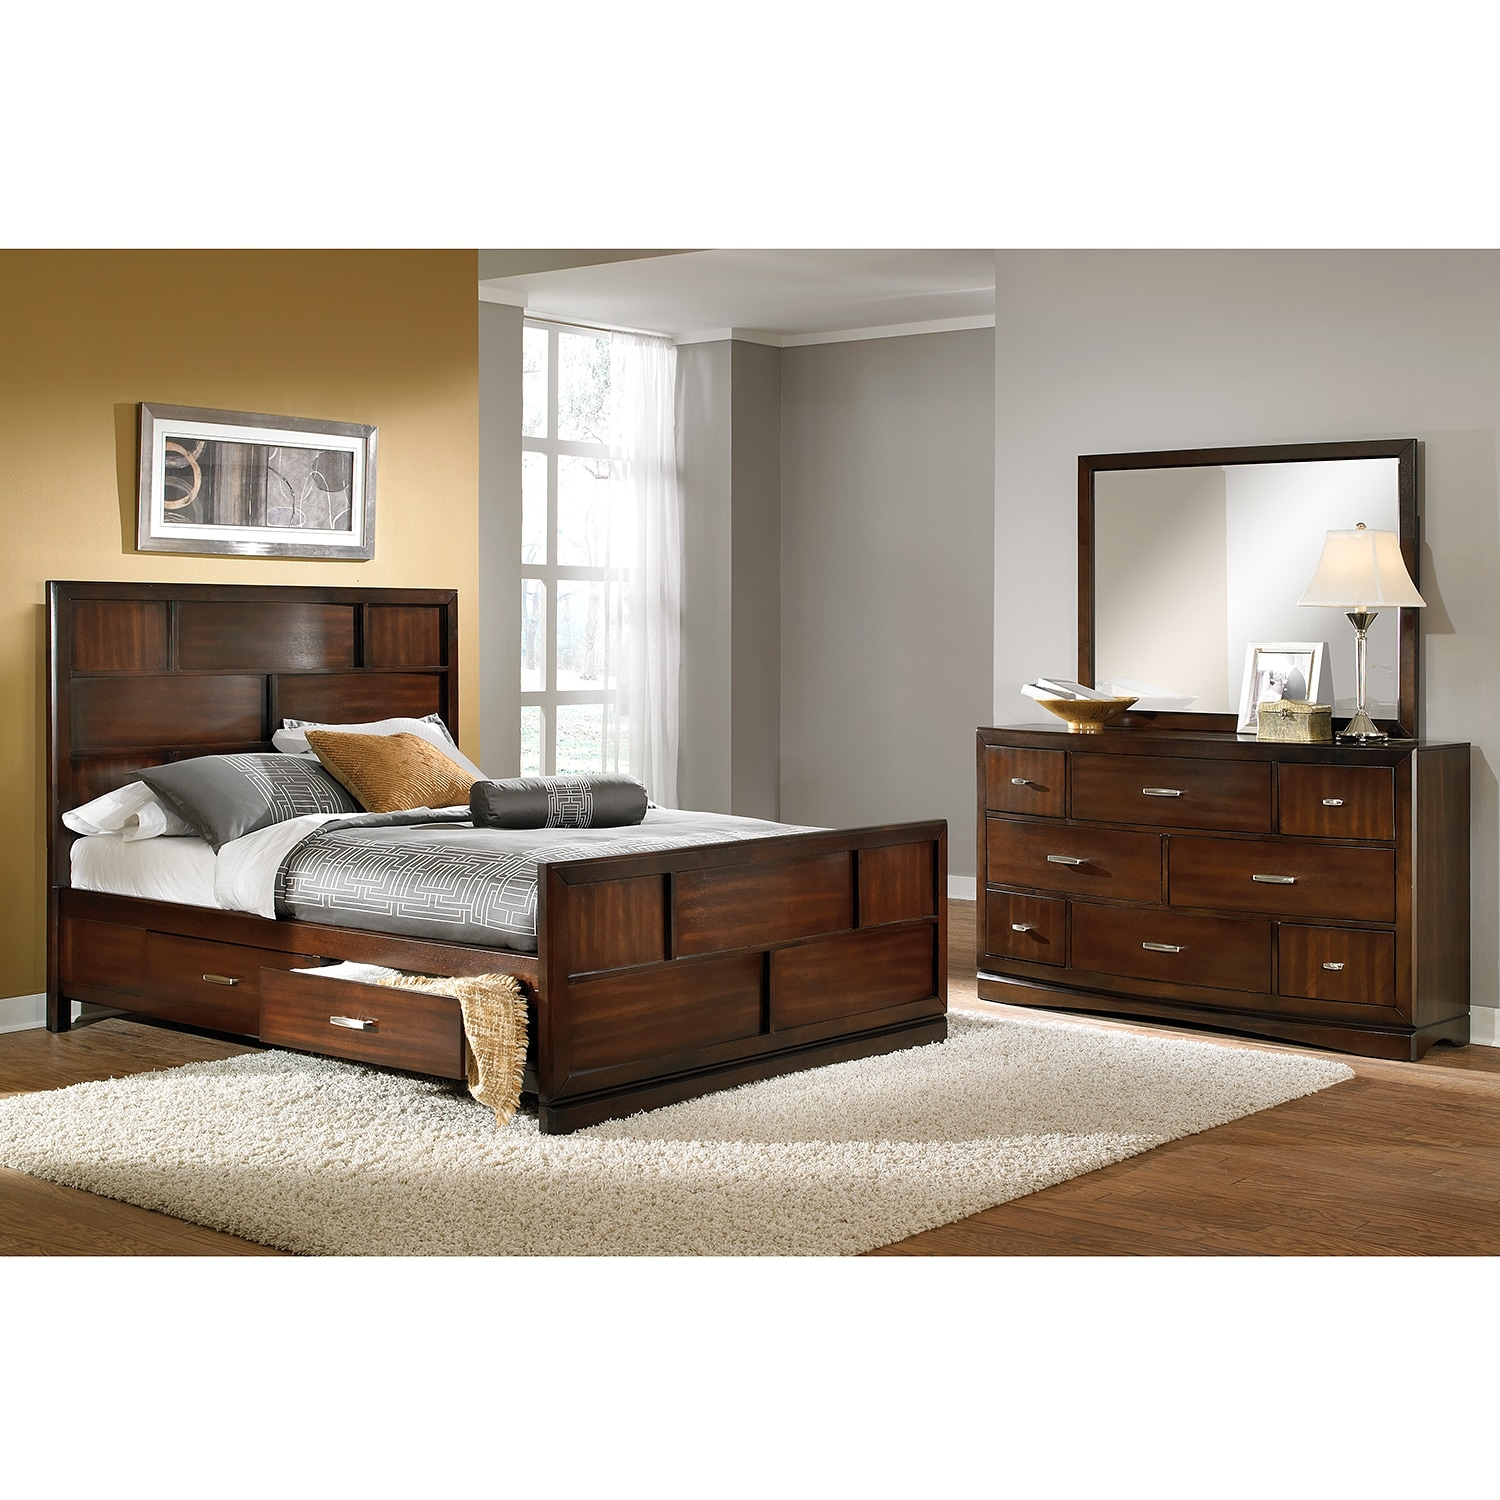 Shop Bedroom Packages